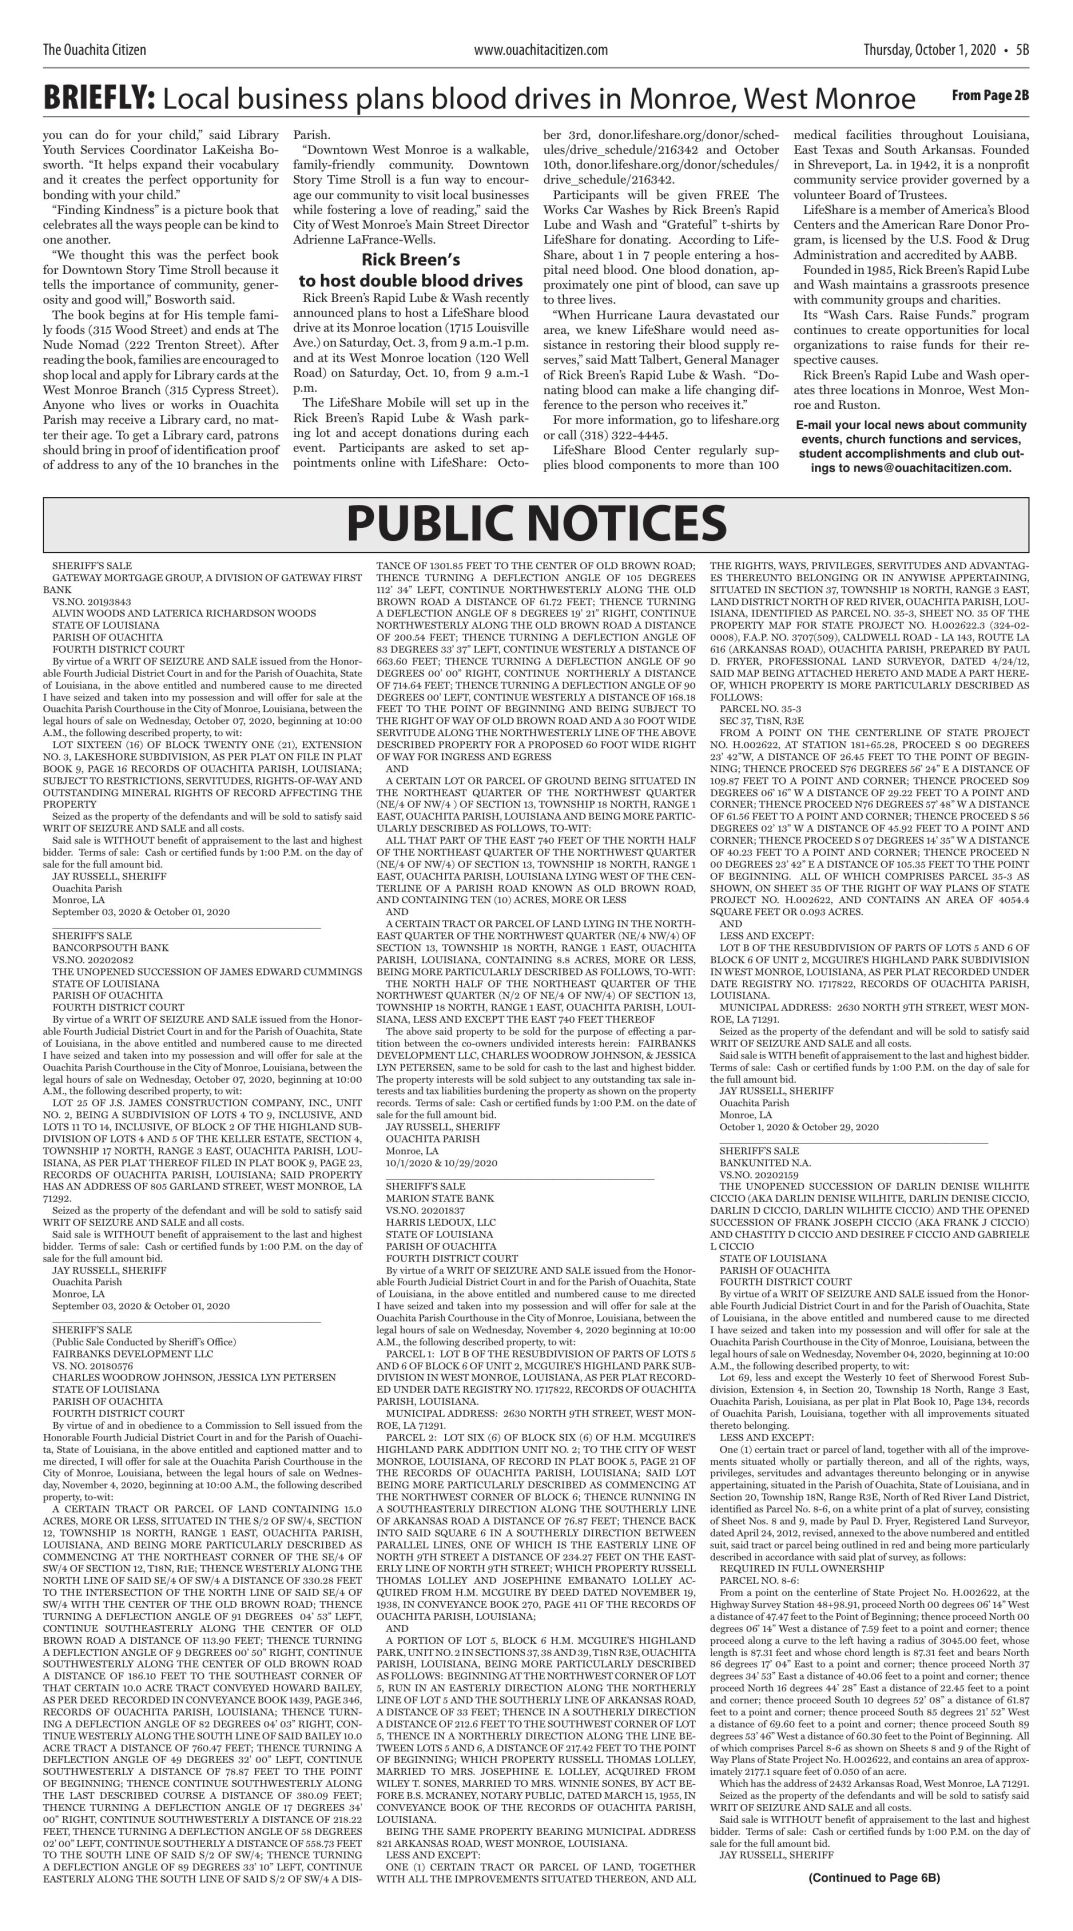 Oct. 1, 2020 Public Notices, click to download pages